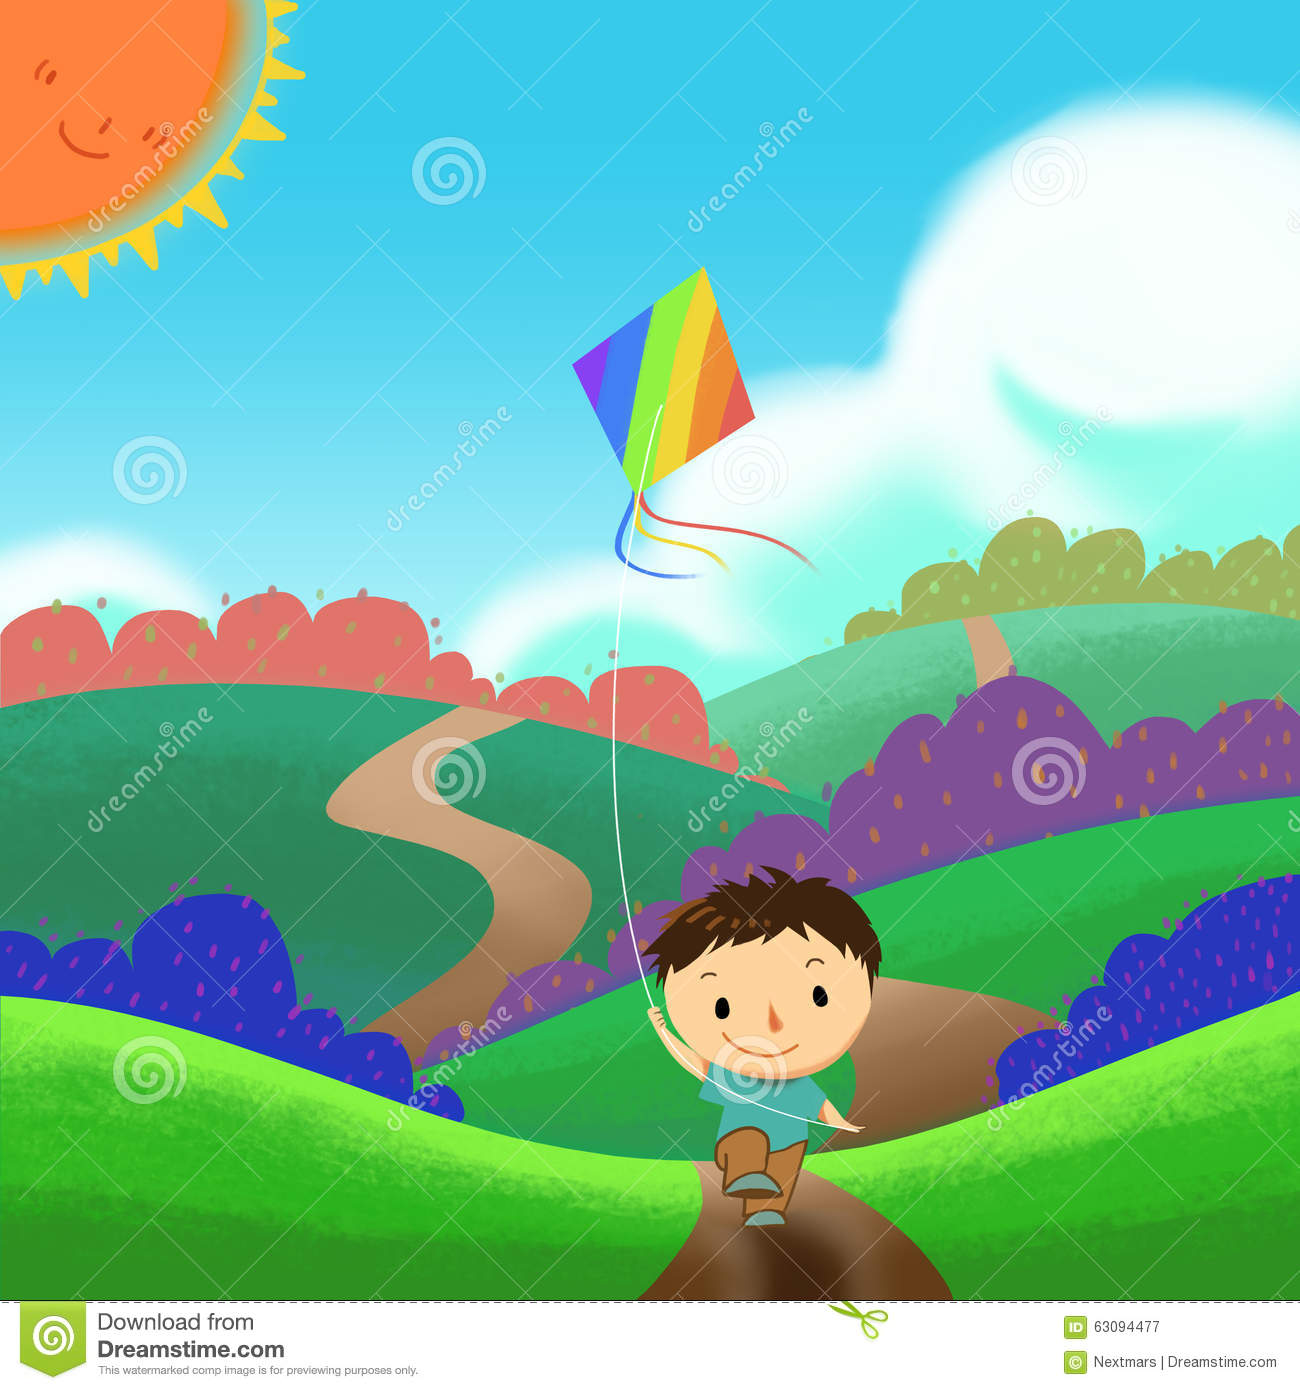 wallpaper kite cartoon - photo #27